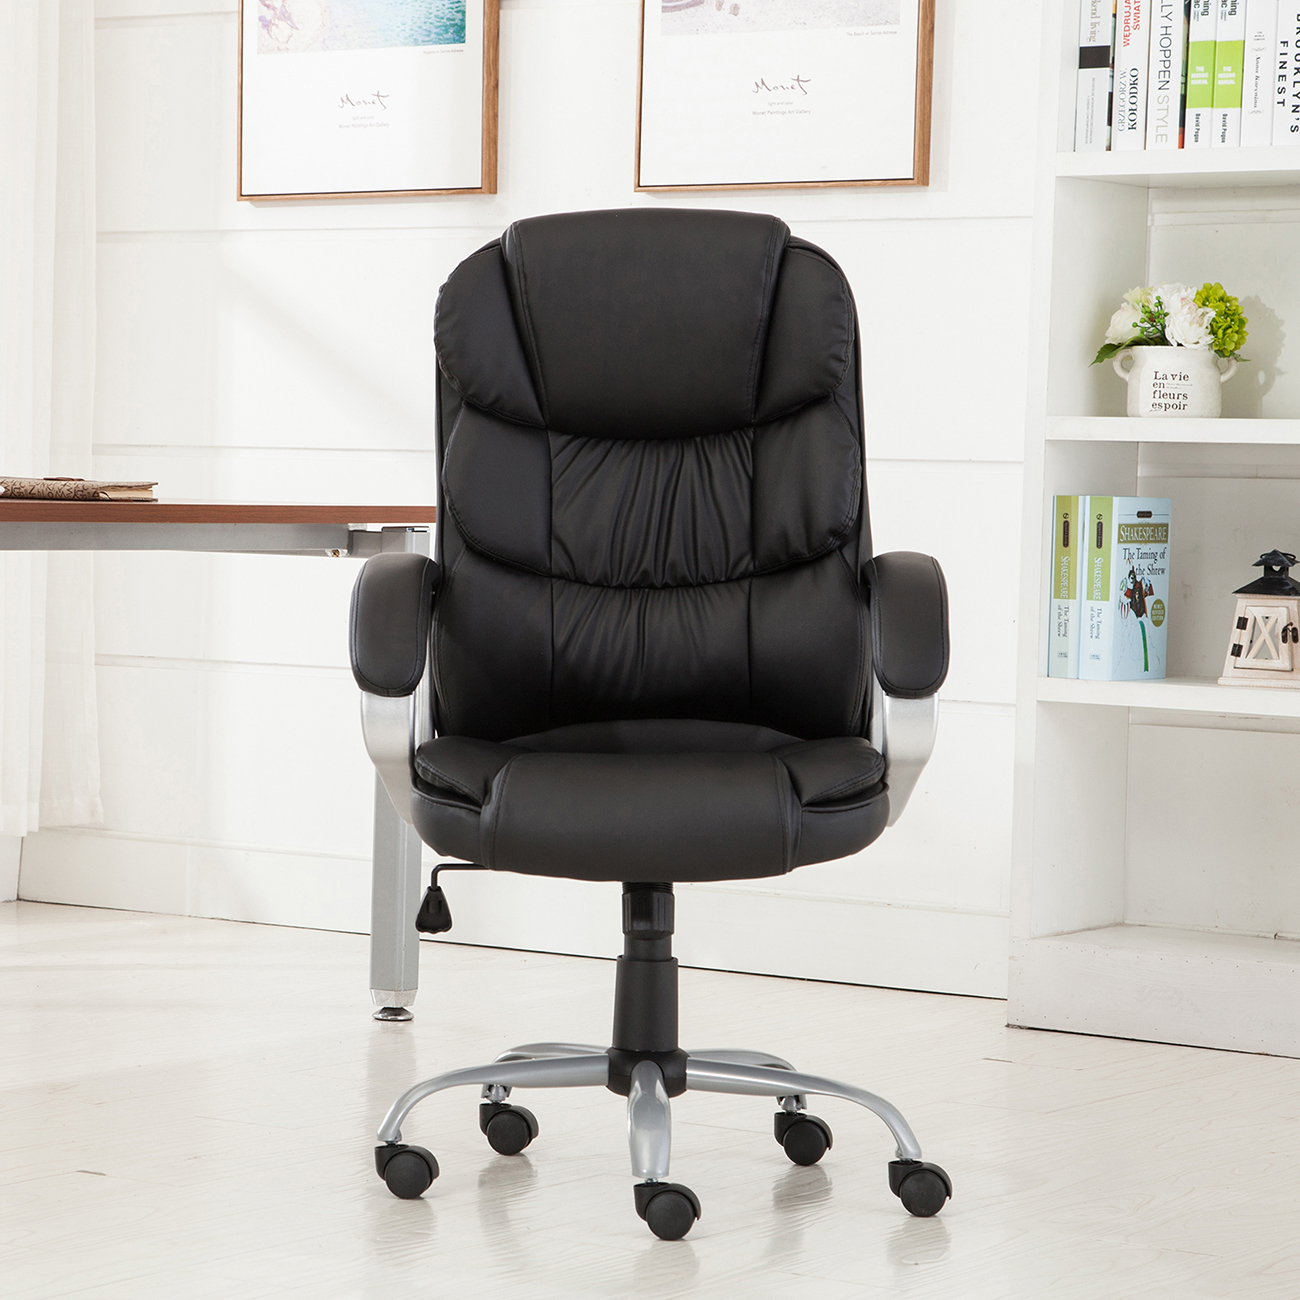 PU Leather Office Rolling Computer Chair Black Mocha High Back Executive Desk